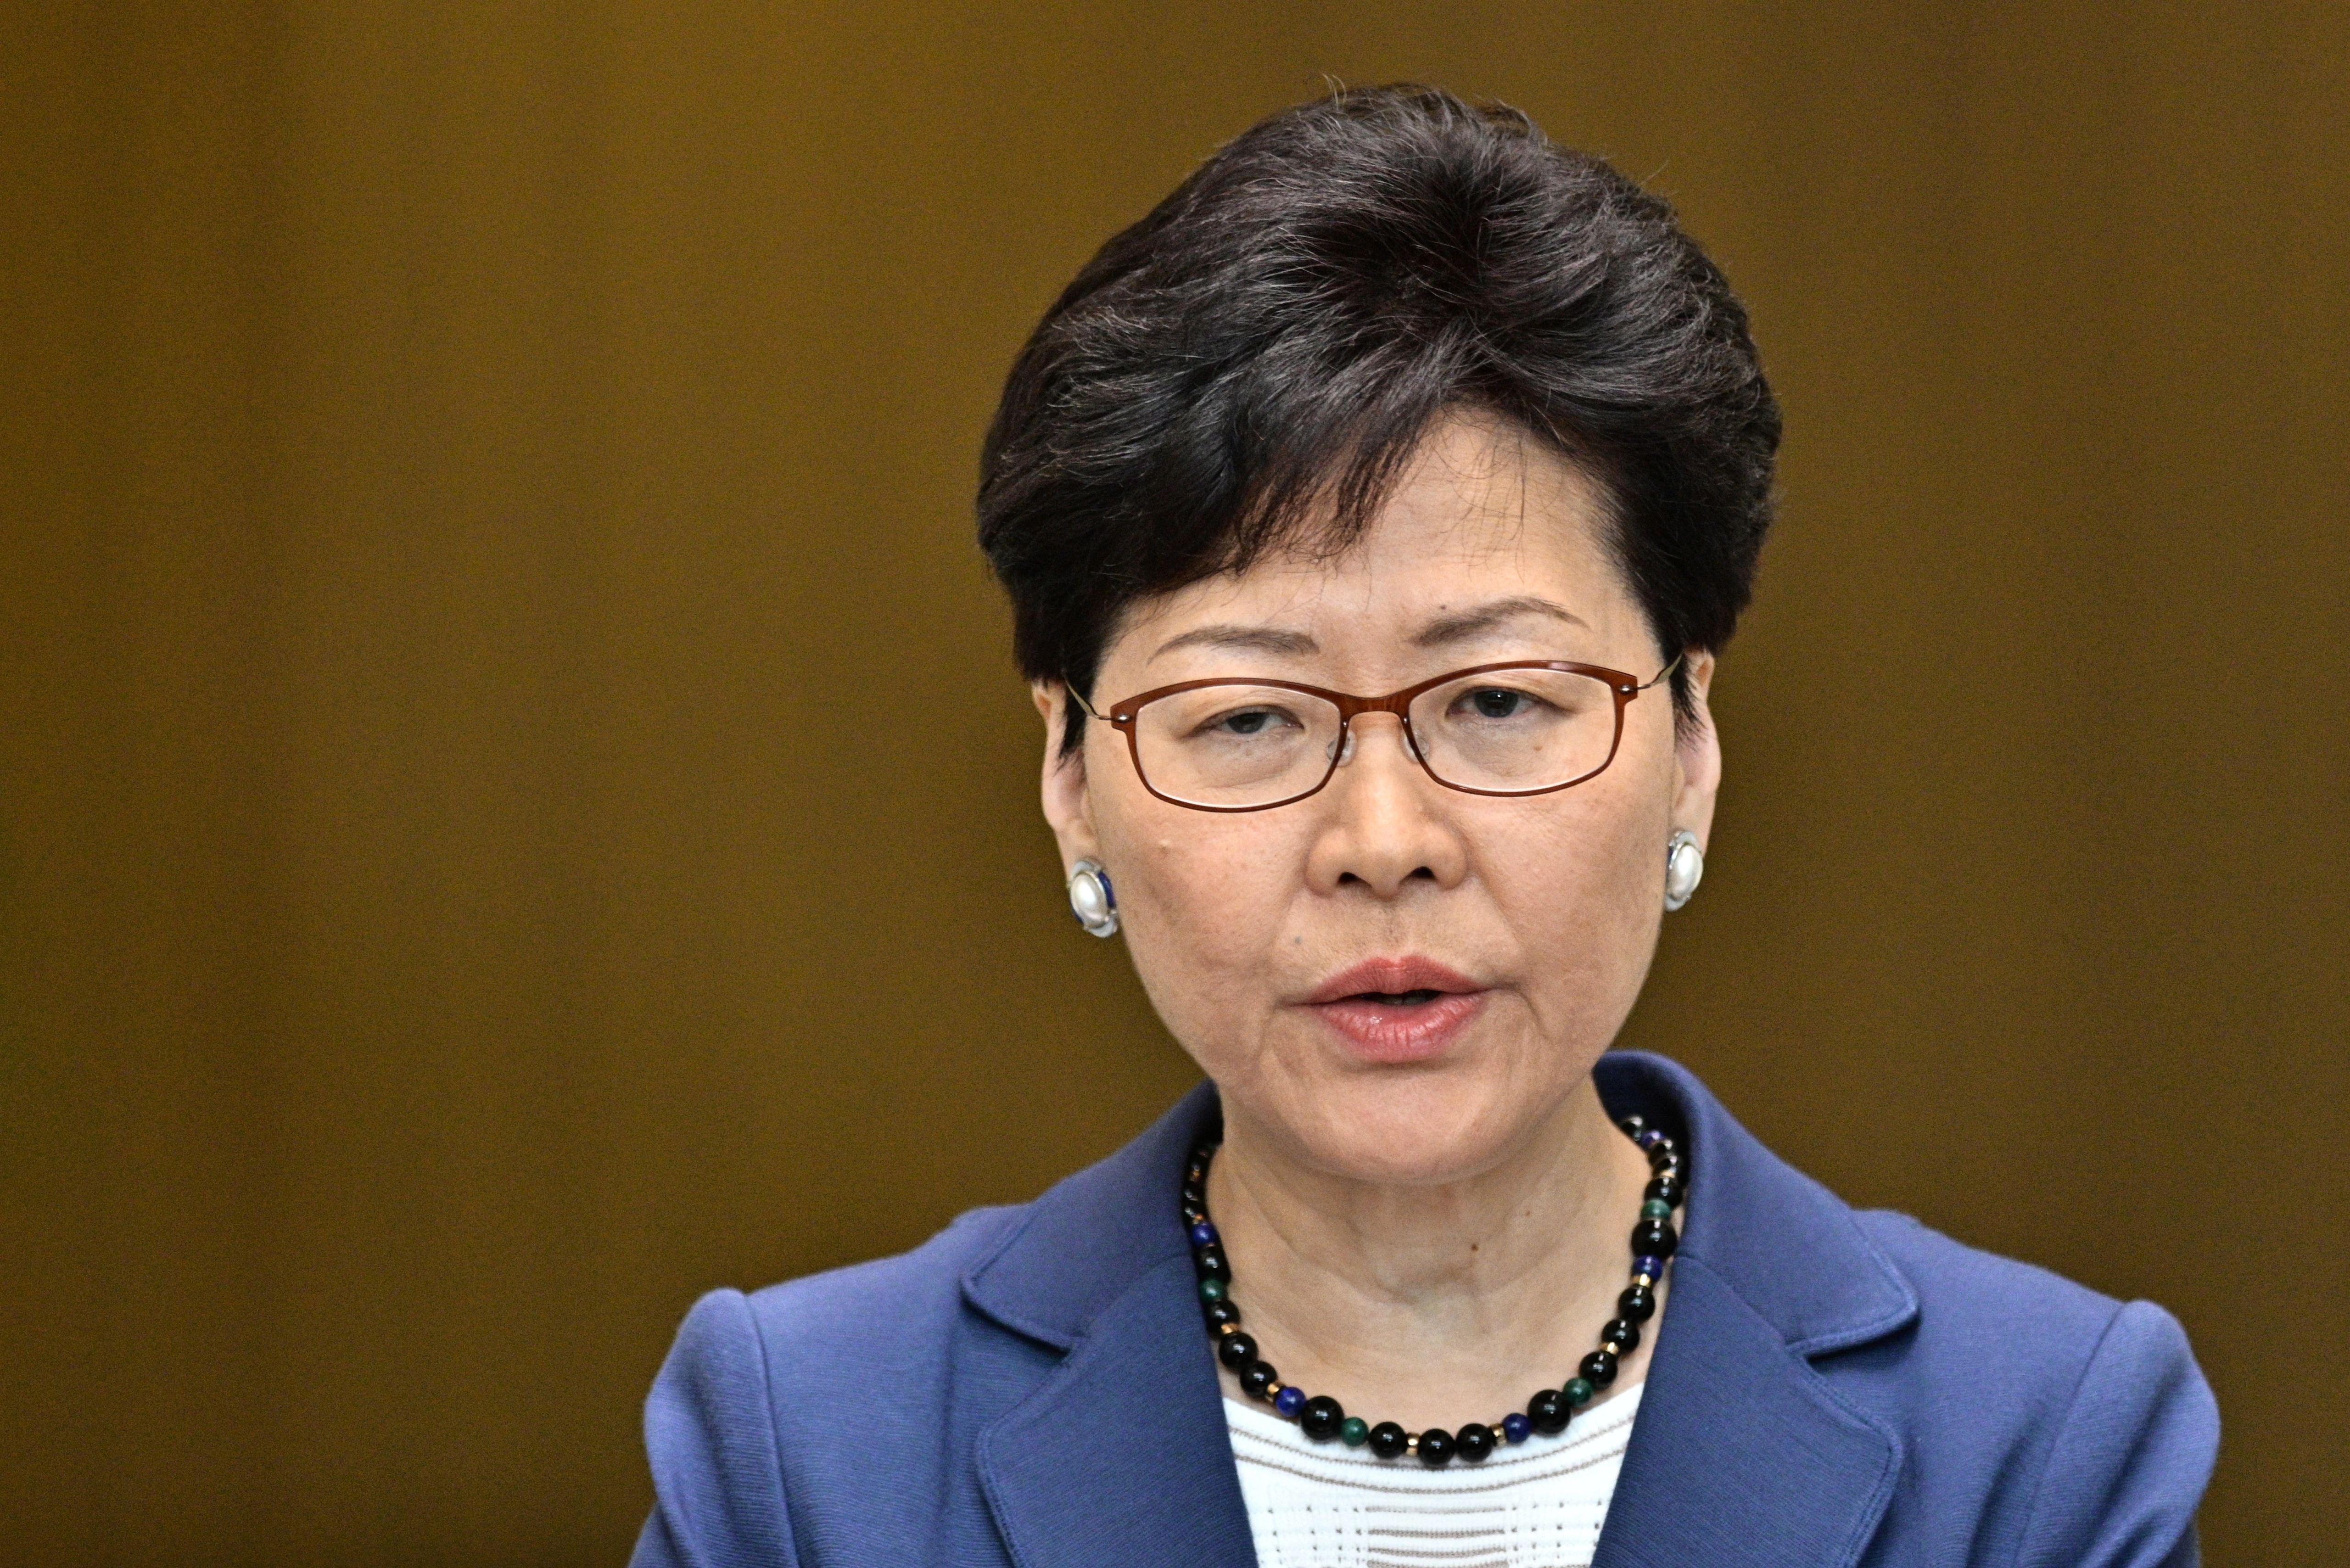 Chief Executive Carrie Lam speaks during a press conference at the government headquarters in Hong Kong on June 10, 2019.